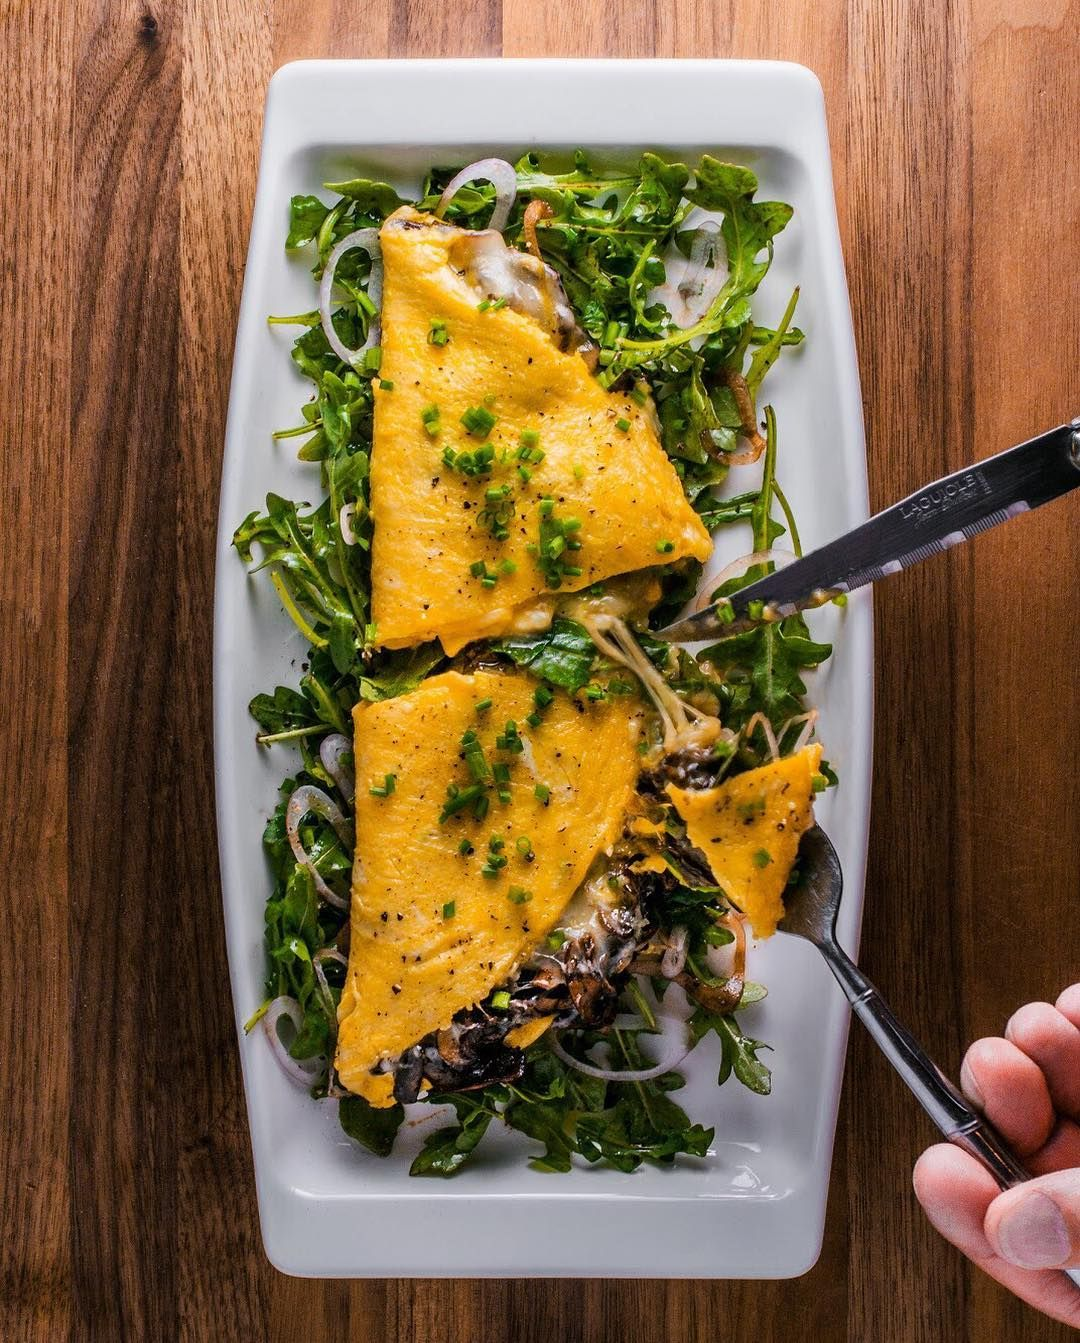 Bask In The Glory Of This Delightful French Omelette With Baby Bella Mushrooms And Fontina French Omelette Clean Eating Recipes Food Network Recipes